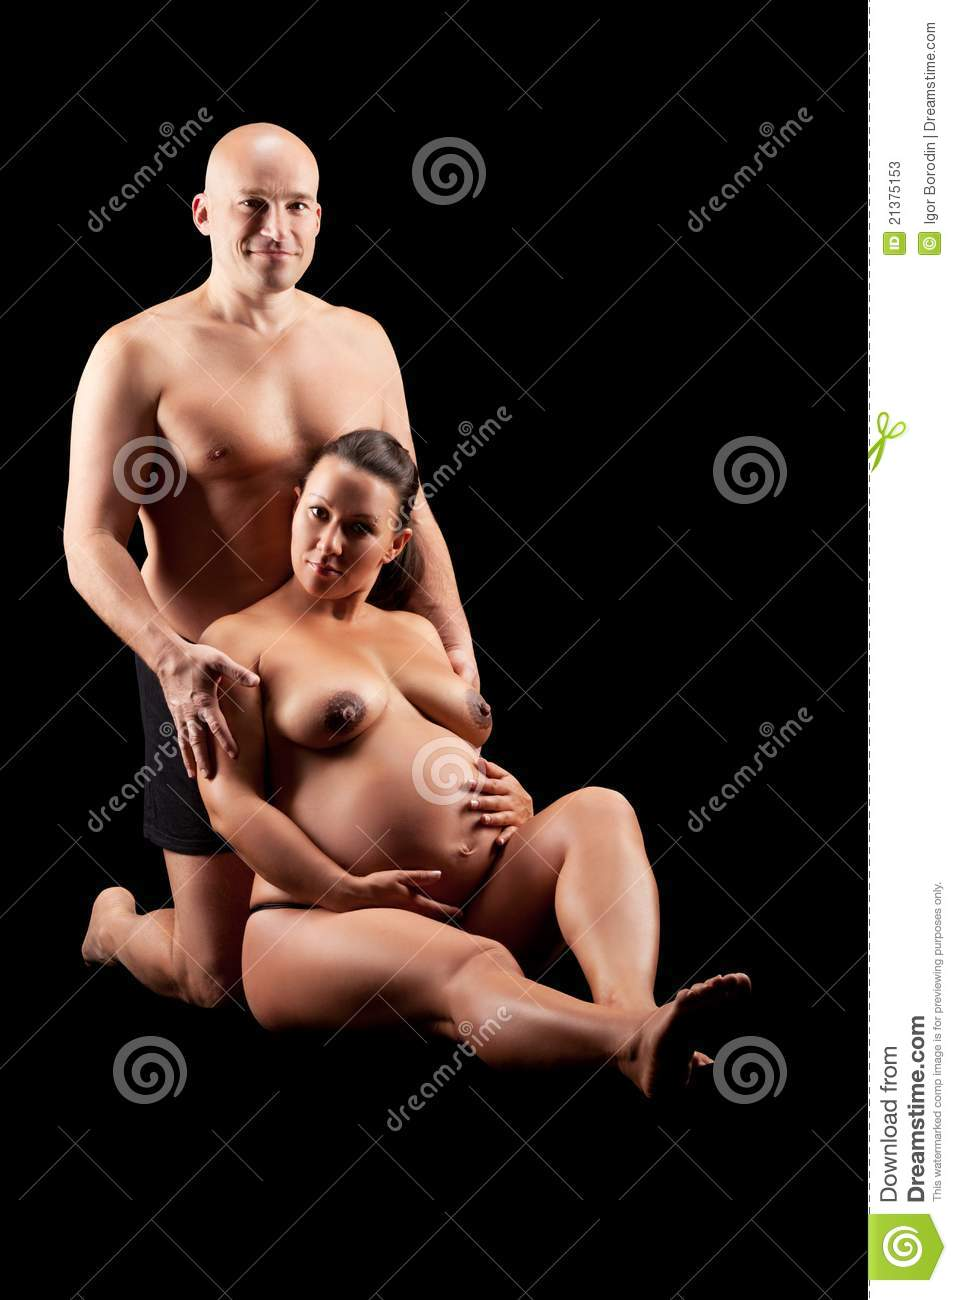 Commit error. nude of husband pregnant wife